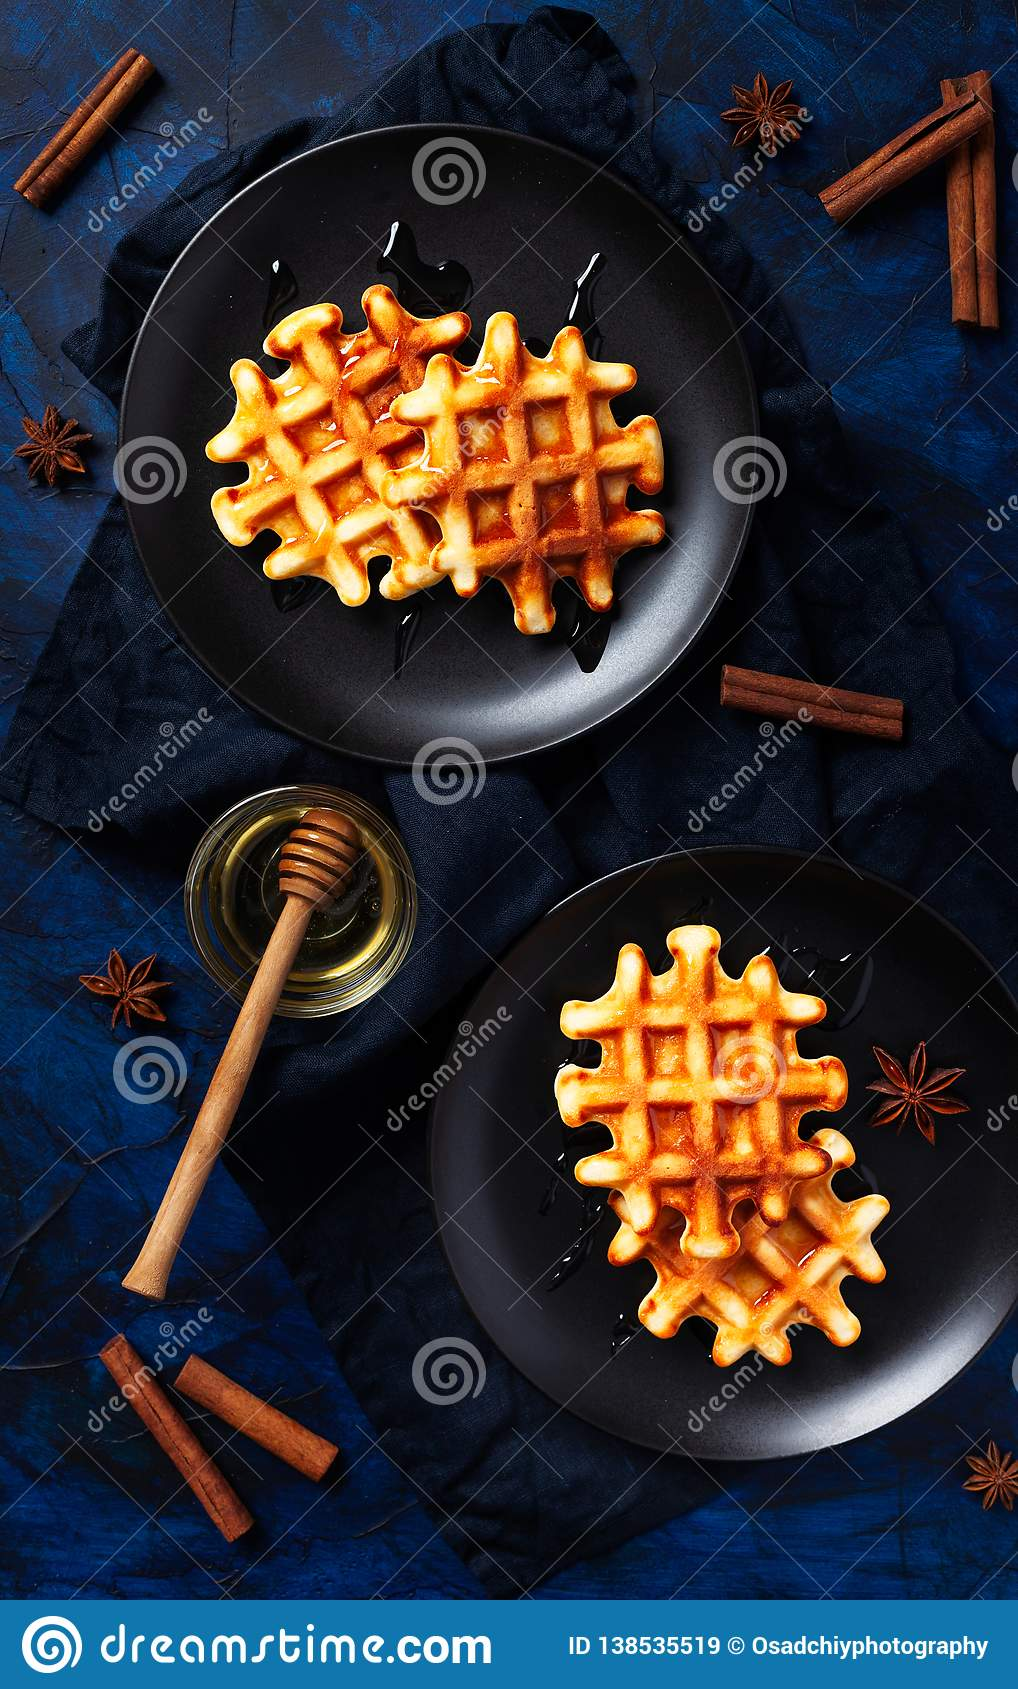 Belgian waffles with honey and cinnamon on dark blue textured background - fresh baked pastry with spices